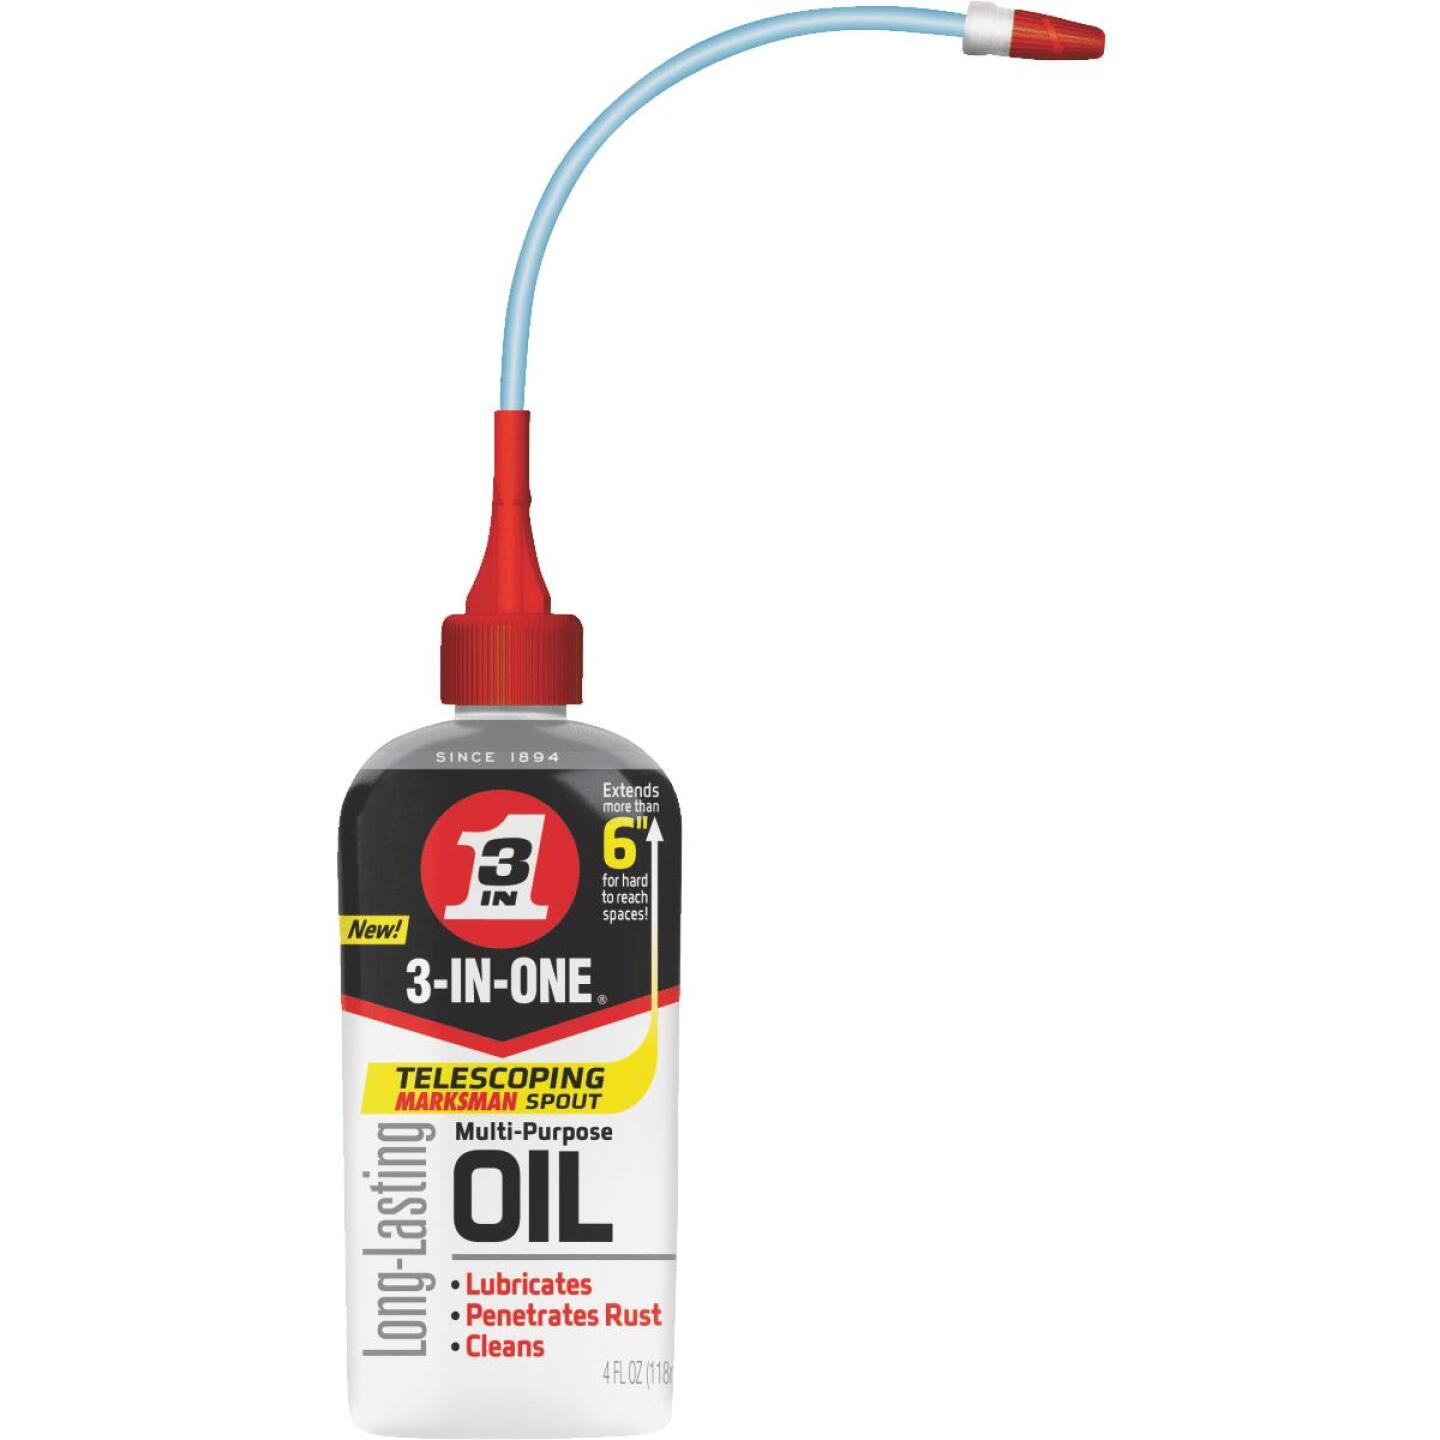 3-IN-ONE 4 Oz. Drip Can Multi-Purpose Lubricant with Telescoping Spout Image 1